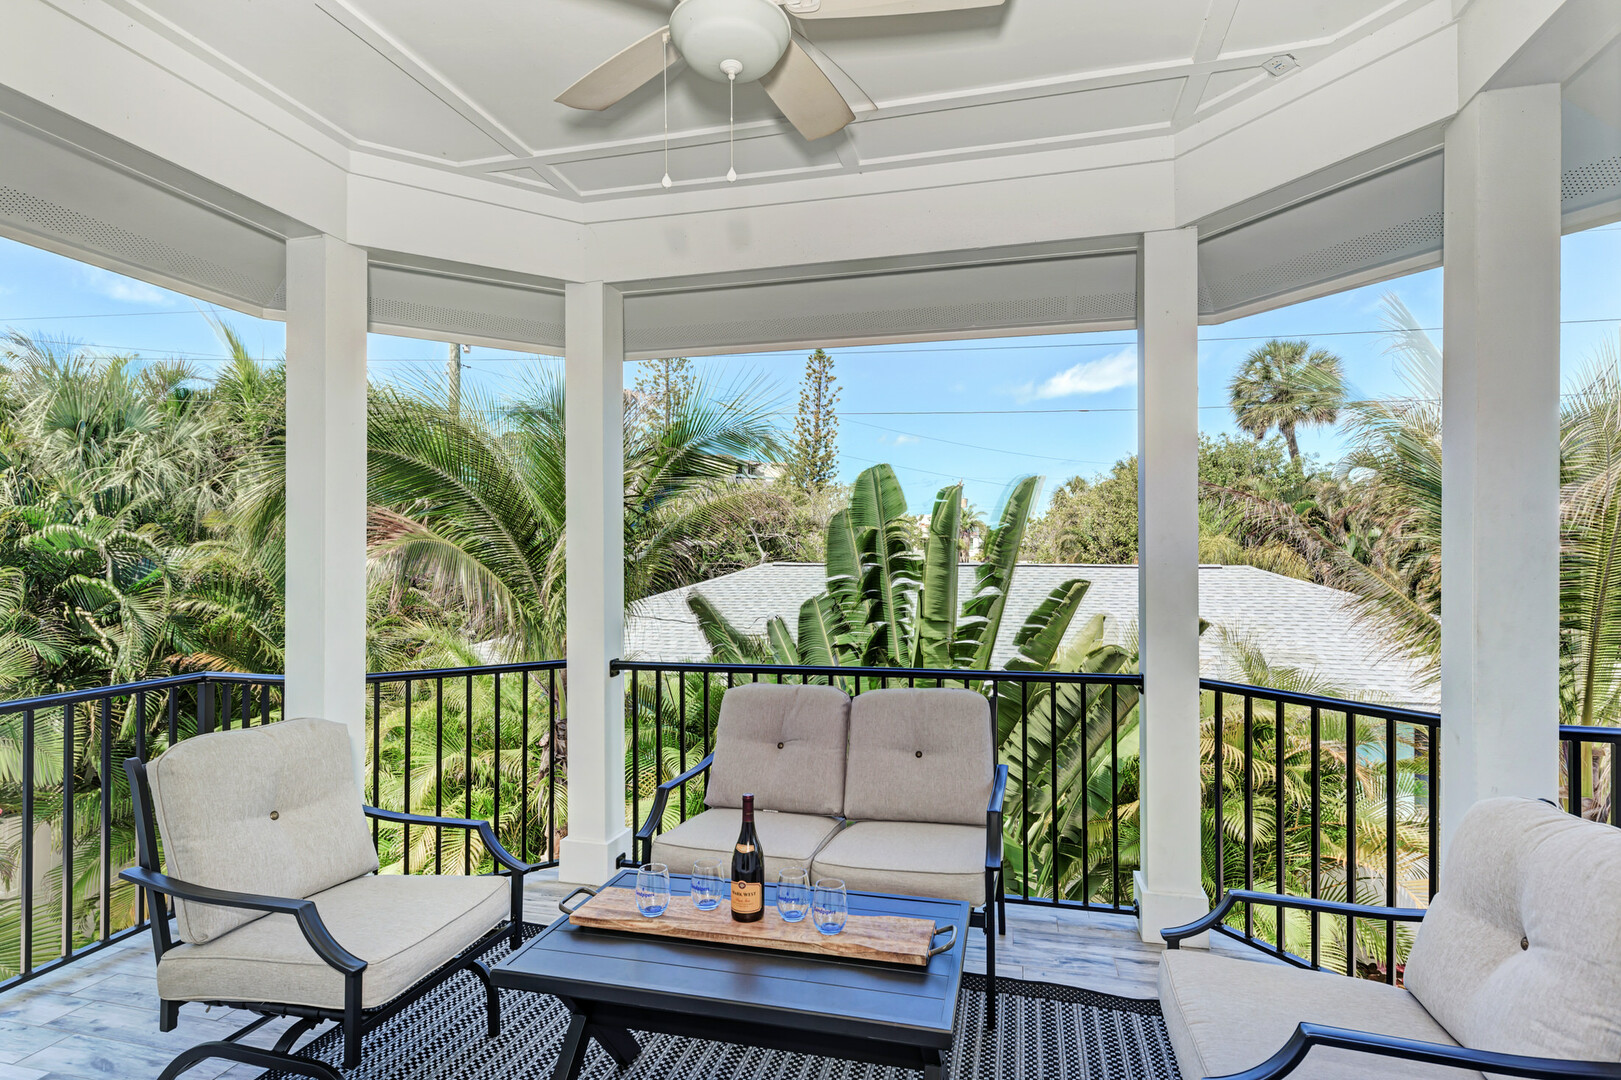 4 Sandpipers Upper balcony with patio furniture